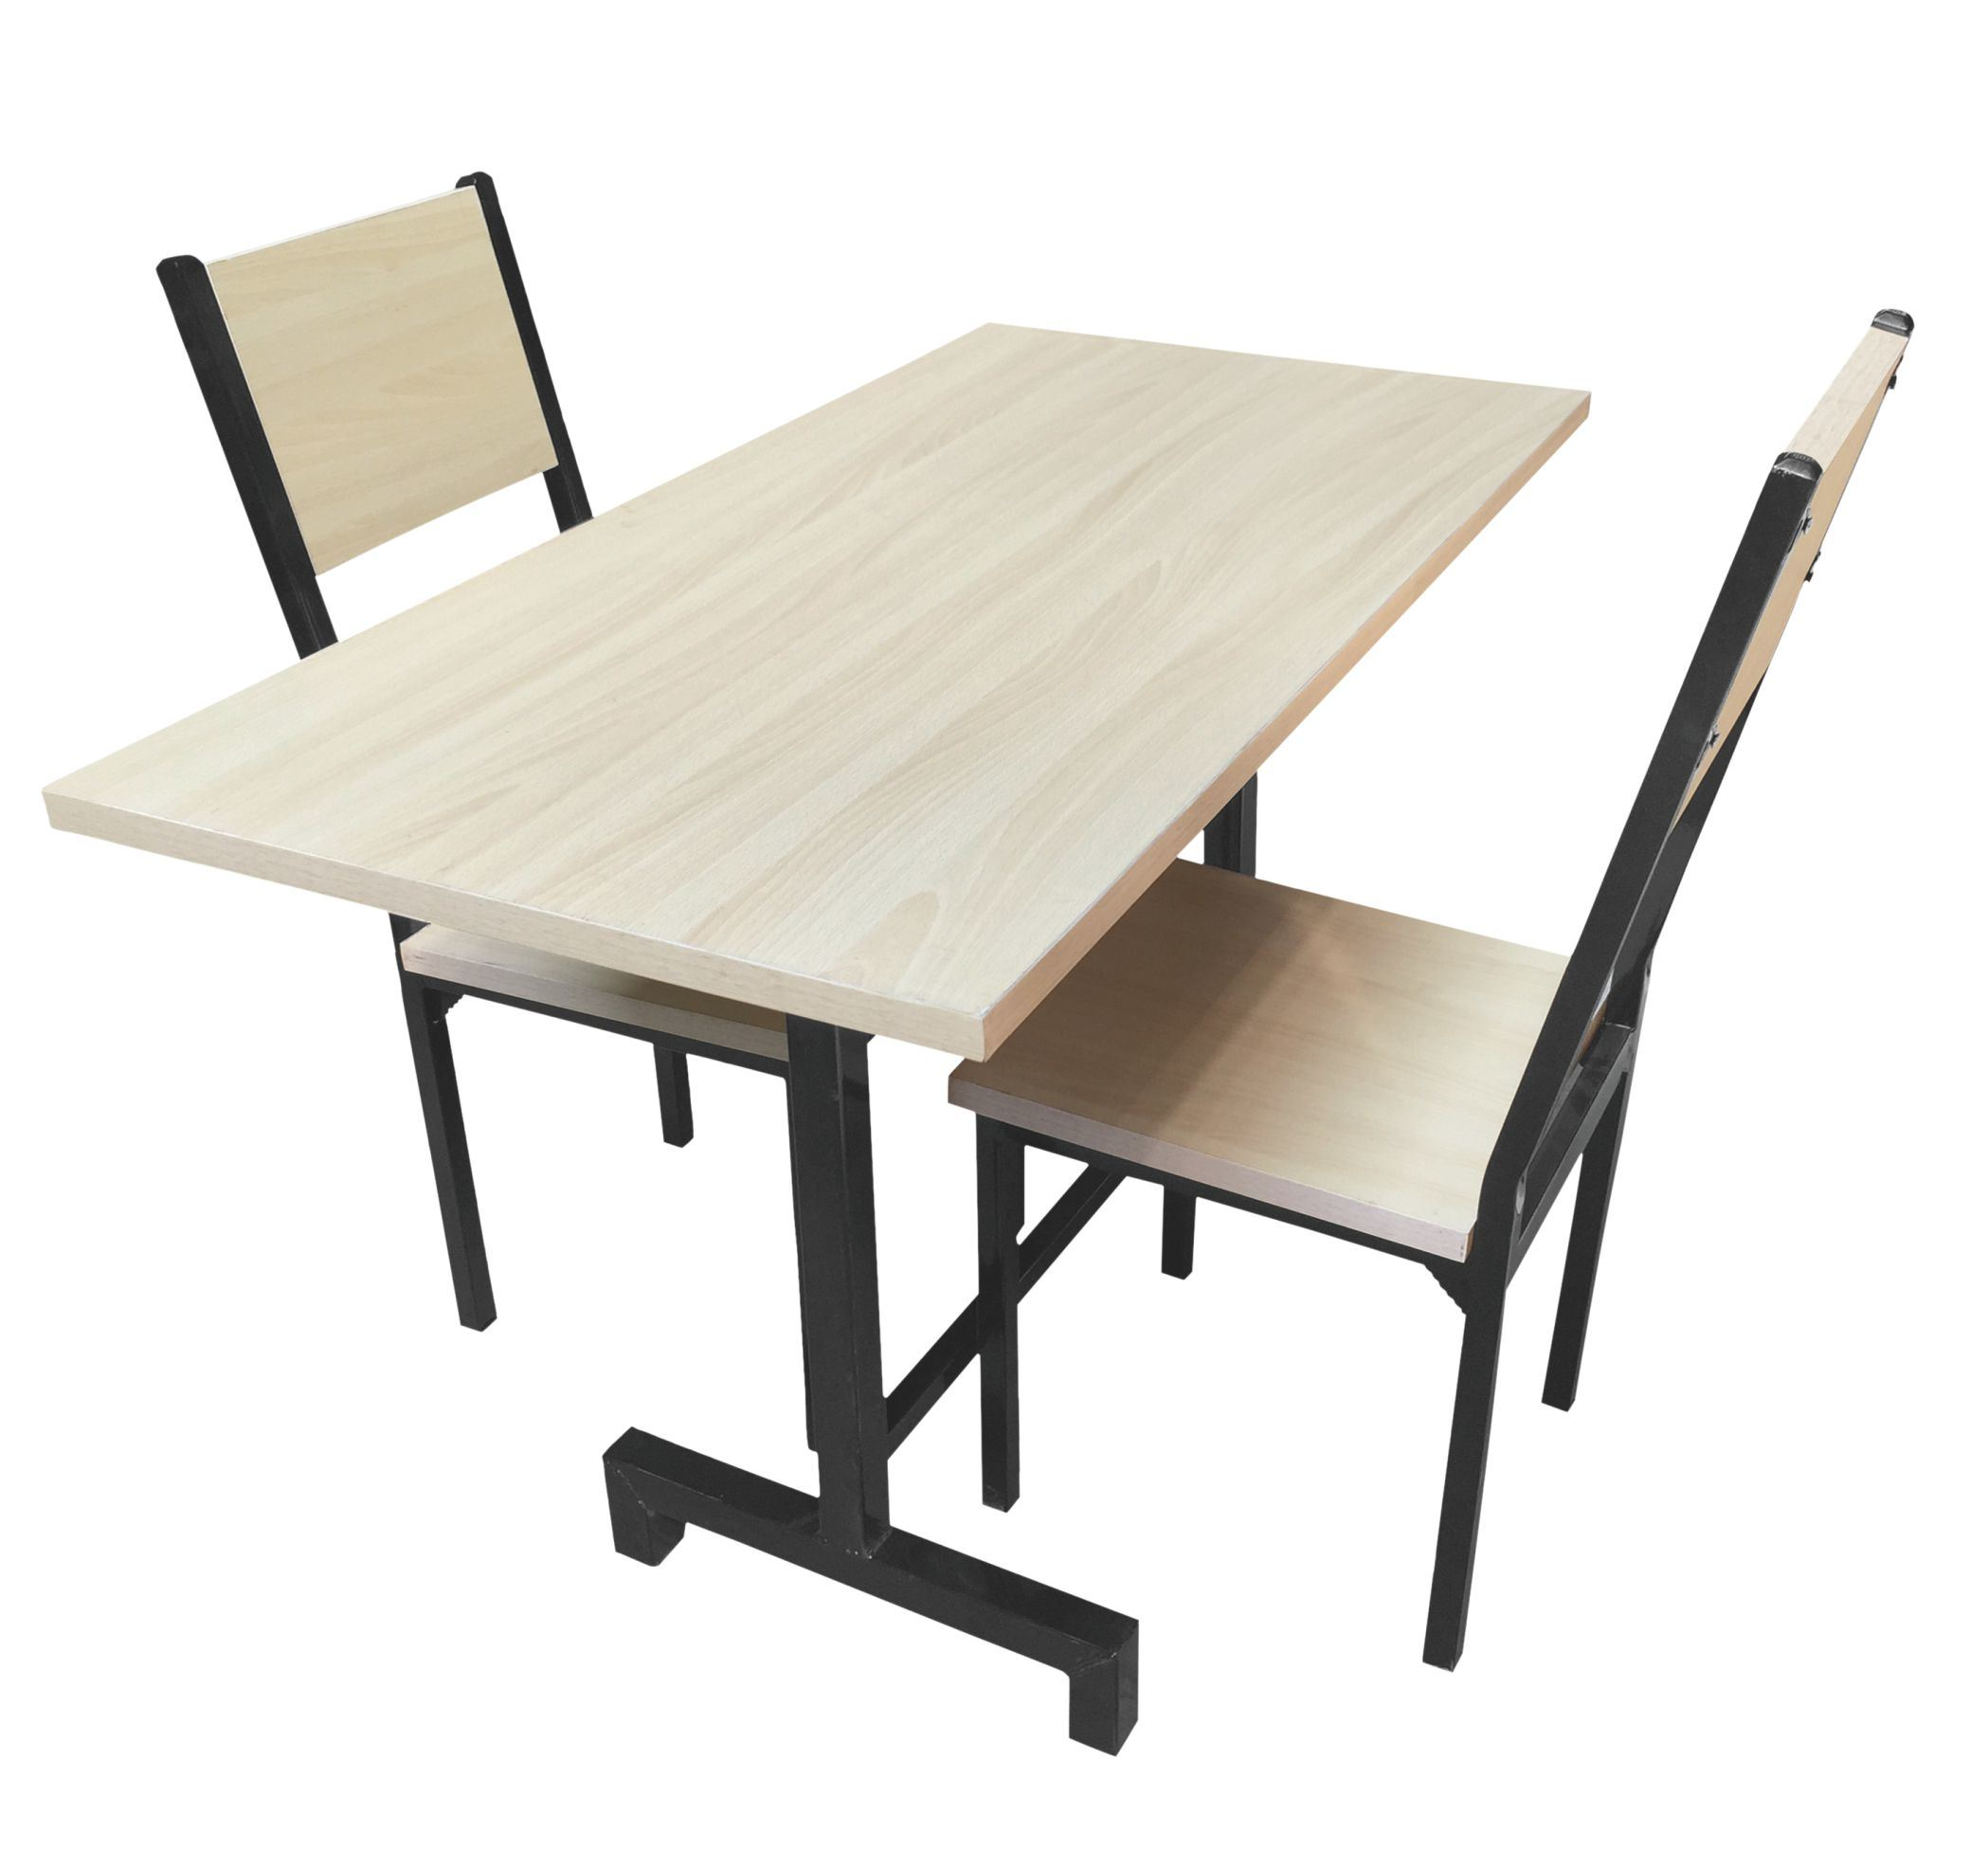 China 40 Square Hotel Restaurant Table Dining Table Metal Steel Dining Table With Chair Set For Sale China Dining Table Wooden Board Table